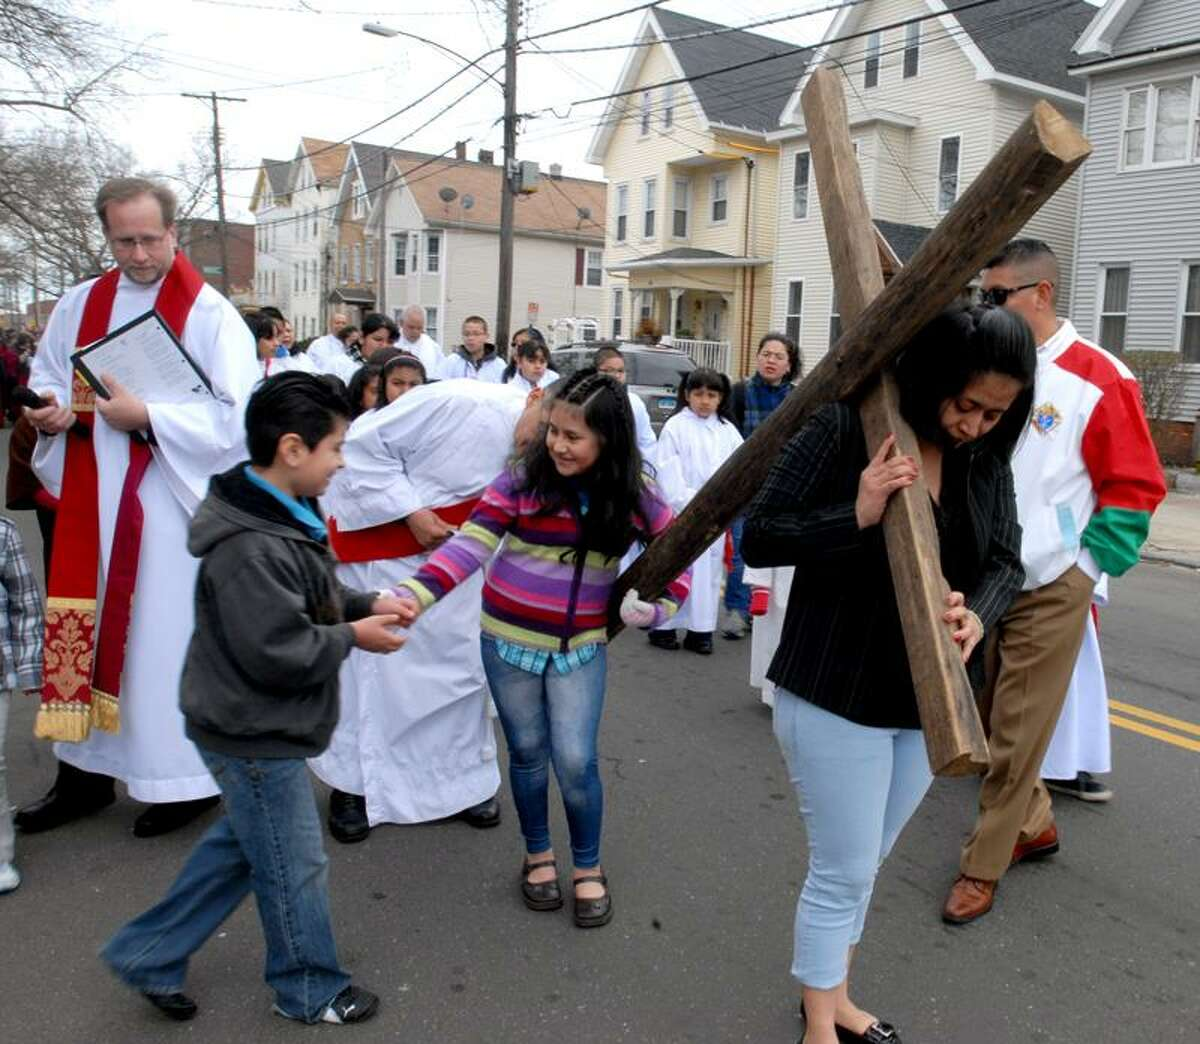 Carolina Paredes, parishioner of St.Rose of Lima Church in New Haven, leads the traditional Way of the Cross procession on Blatchley Avenue Friday. Her daughter, Oyuky, passes her end of the cross on to her brother, Alexander, as they assist their mother. Caroline Kowalczyk/Register